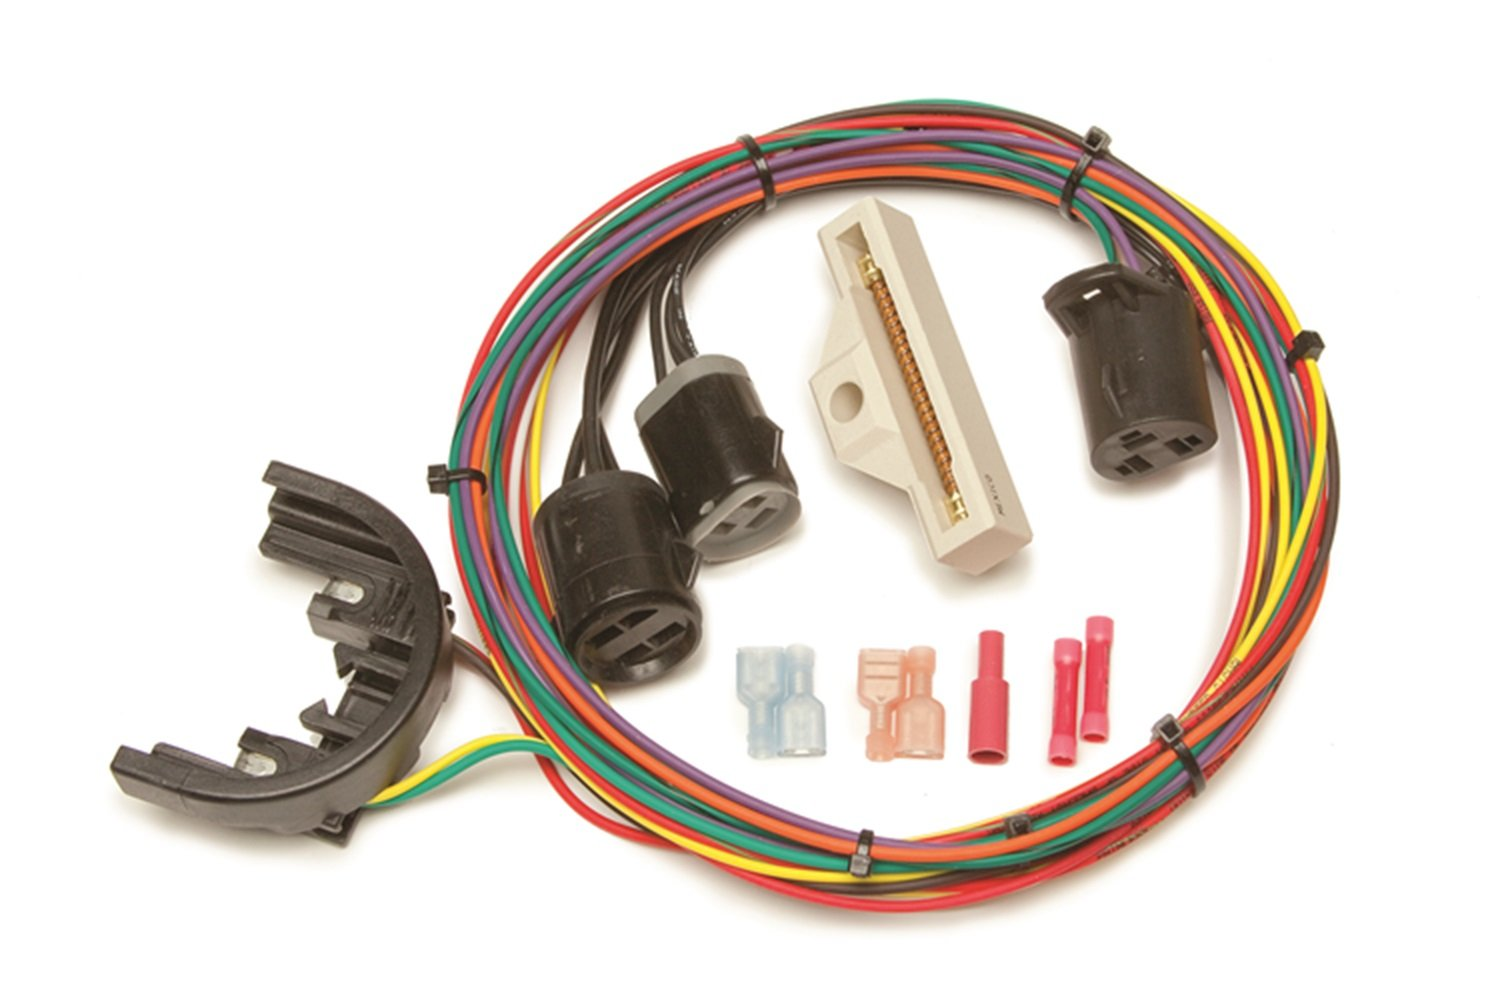 Painless Wiring Harness Kit Schematic Diagrams Amazon Com 30812 Automotive Car Kits